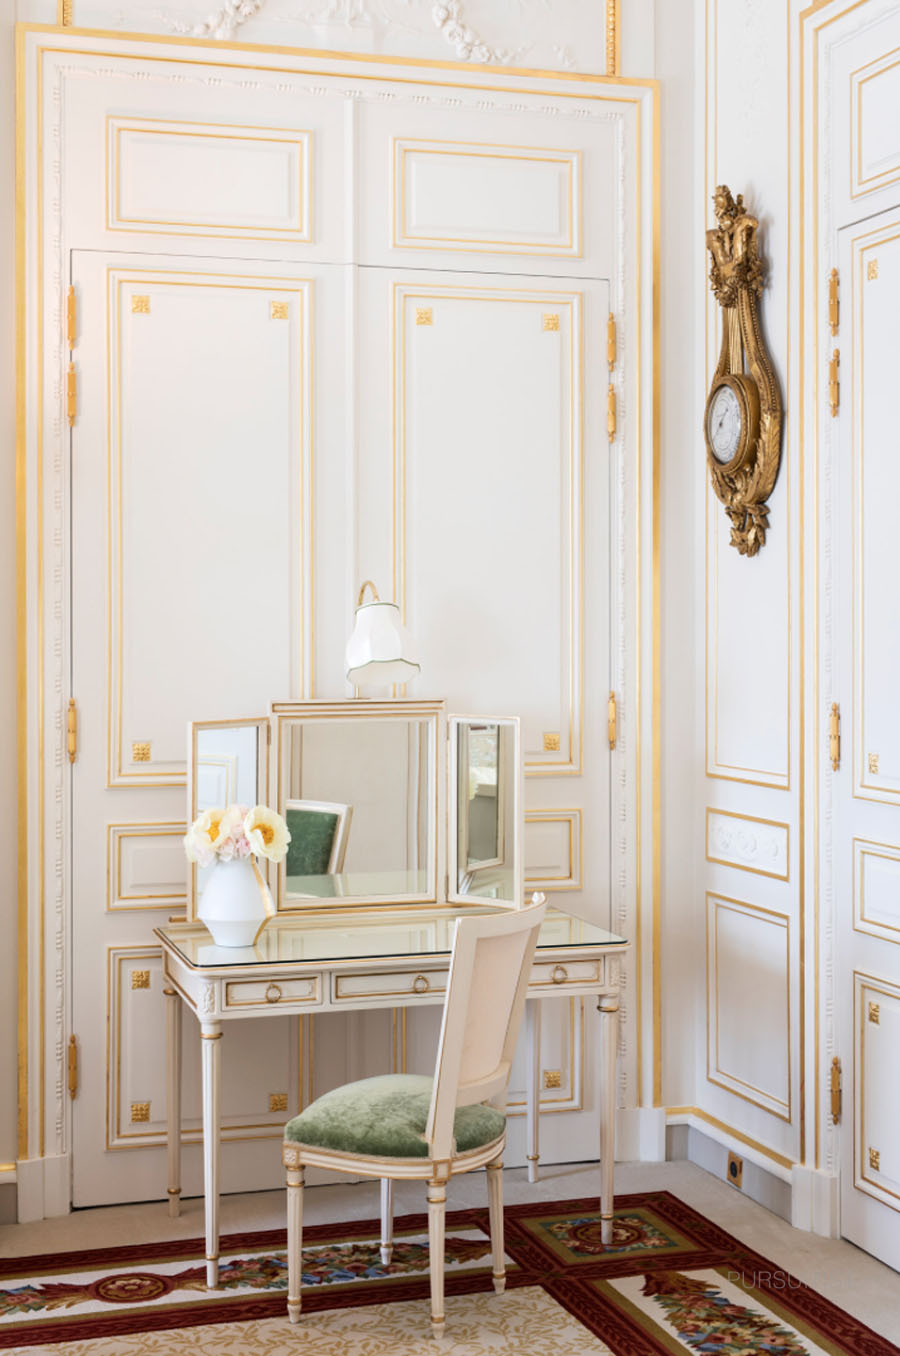 Paris Ritz9